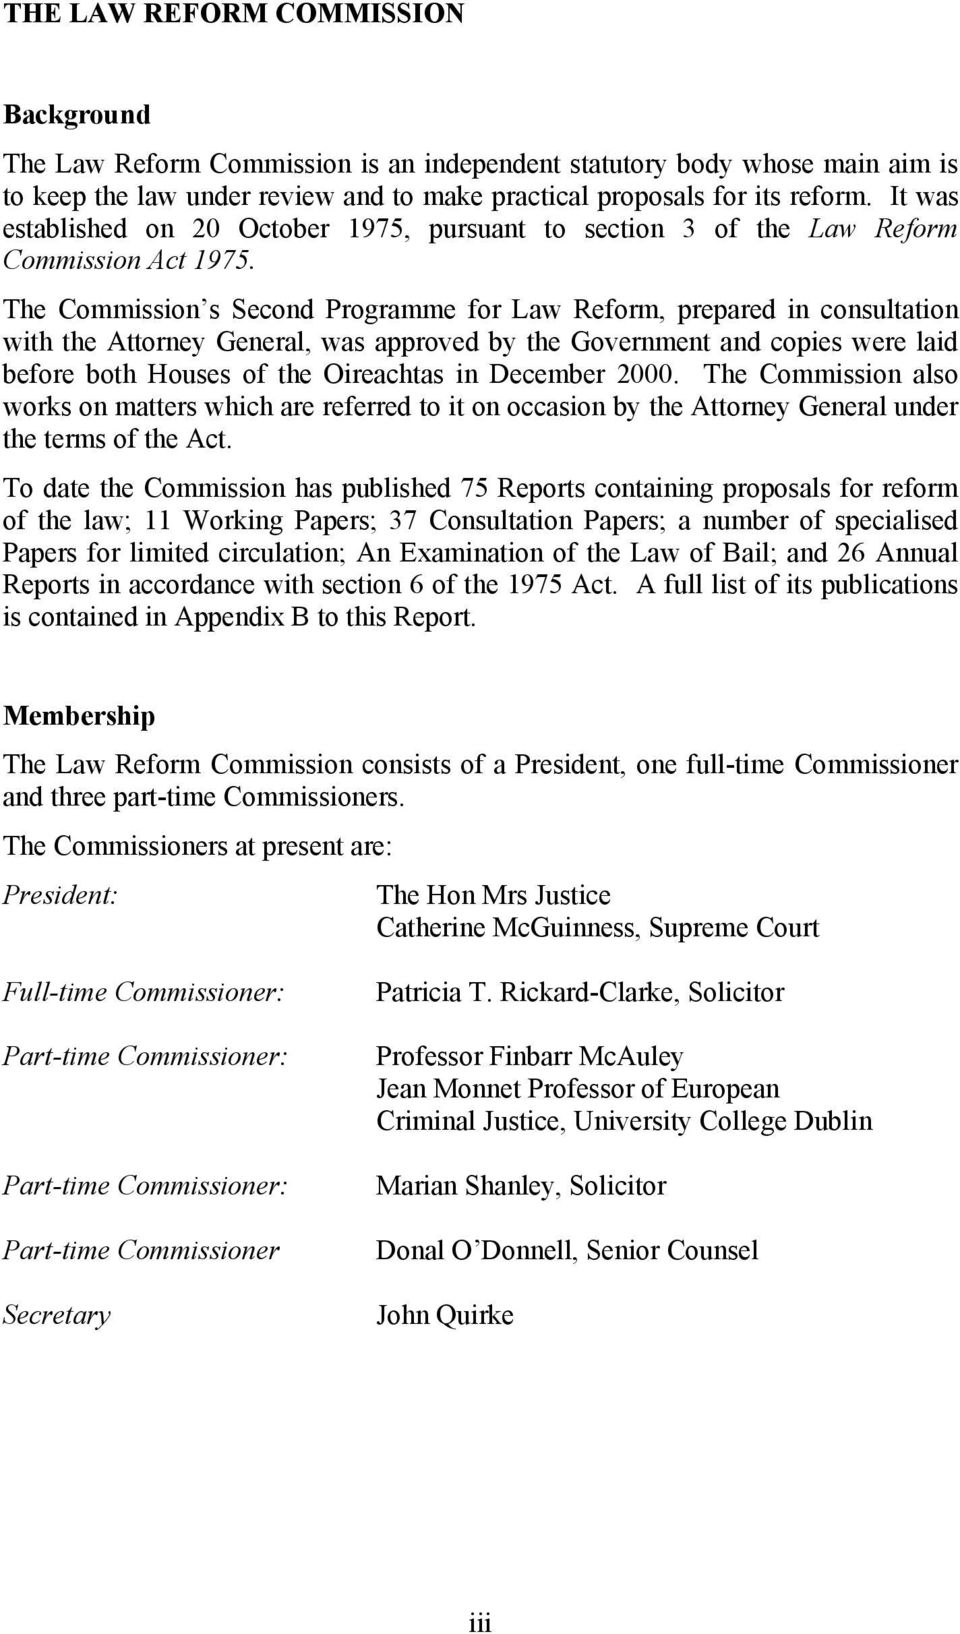 The Commission s Second Programme for Law Reform, prepared in consultation with the Attorney General, was approved by the Government and copies were laid before both Houses of the Oireachtas in